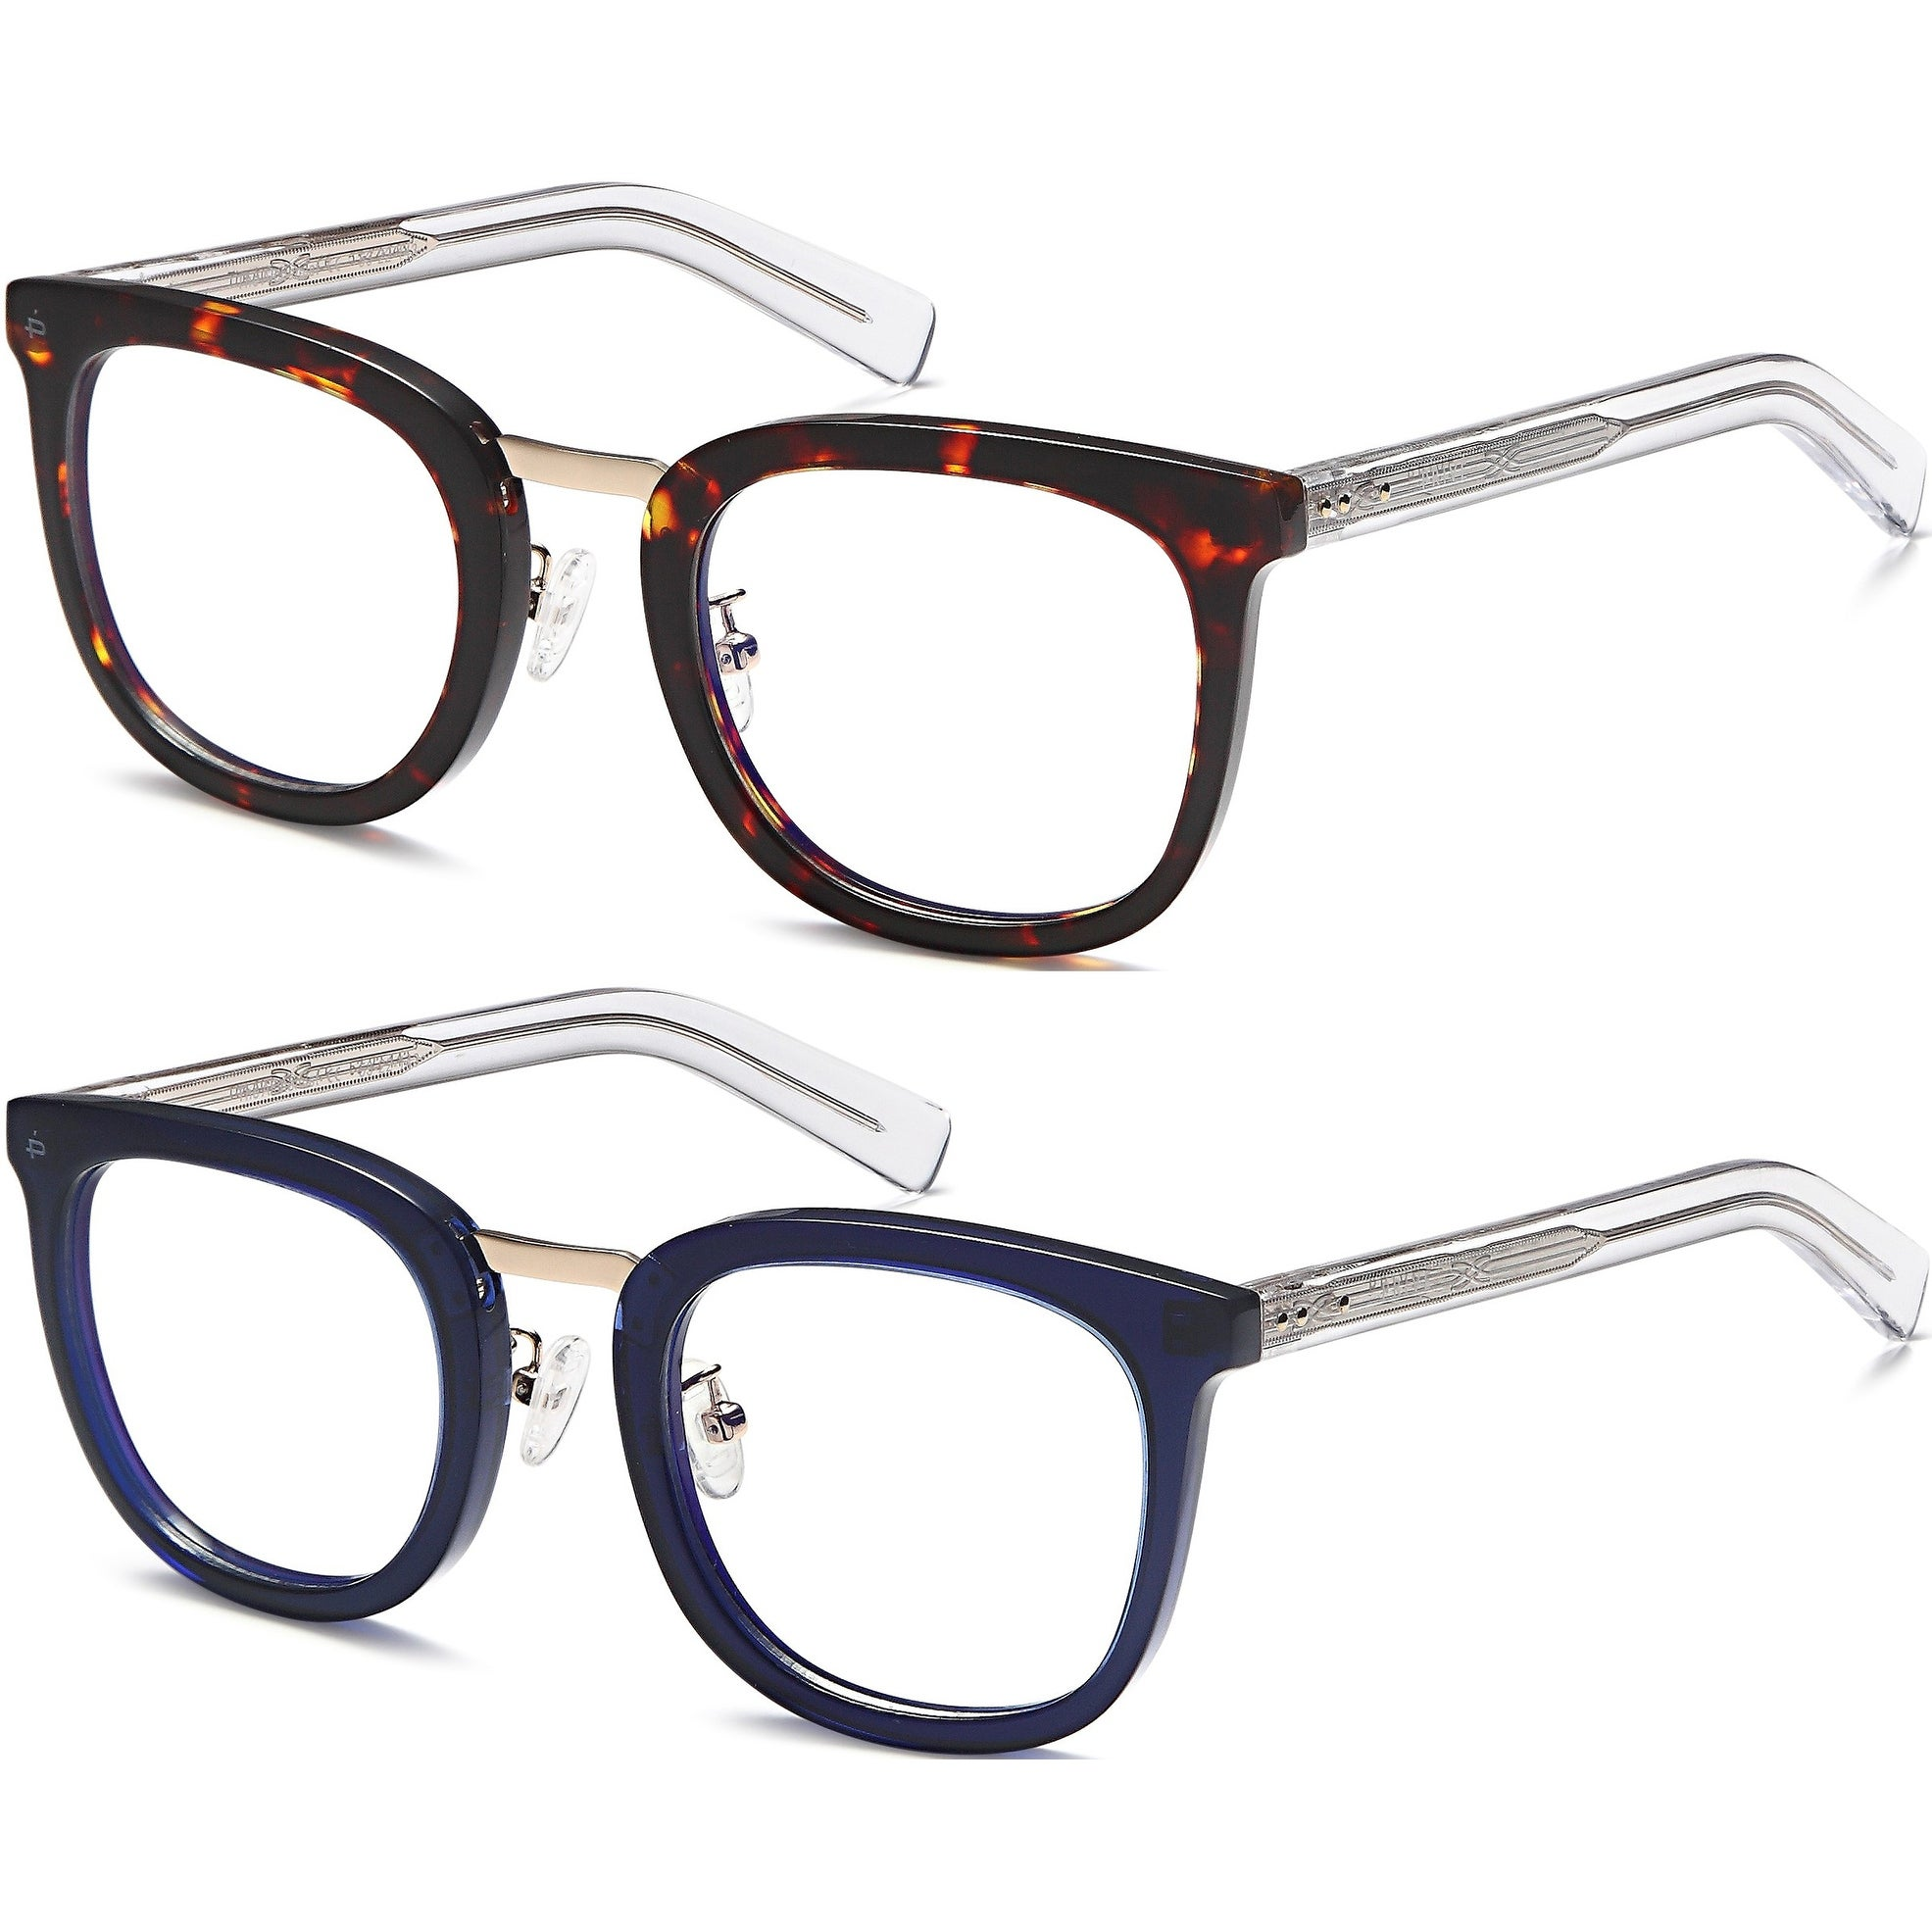 2f4cf0334a Shop PRIVÉ REVAUX The Alchemist Limited Edition Handcrafted Designer  Eyeglasses With Anti Blue-Light Blocking Lenses - Ships To Canada -  Overstock - ...